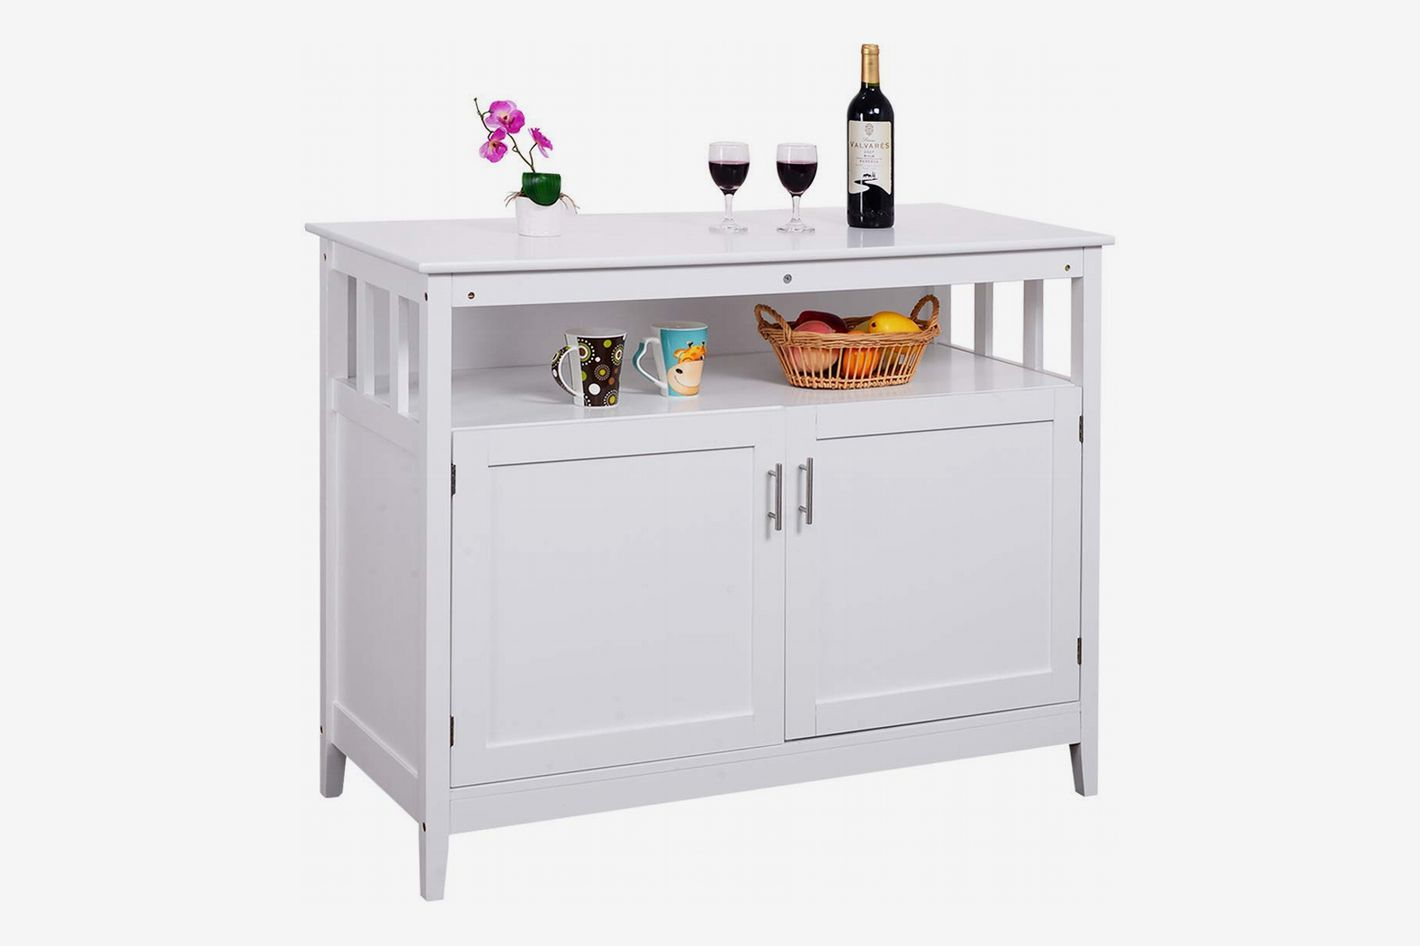 Costzon Kitchen Storage Sideboard Dining Buffet Server Cabinet